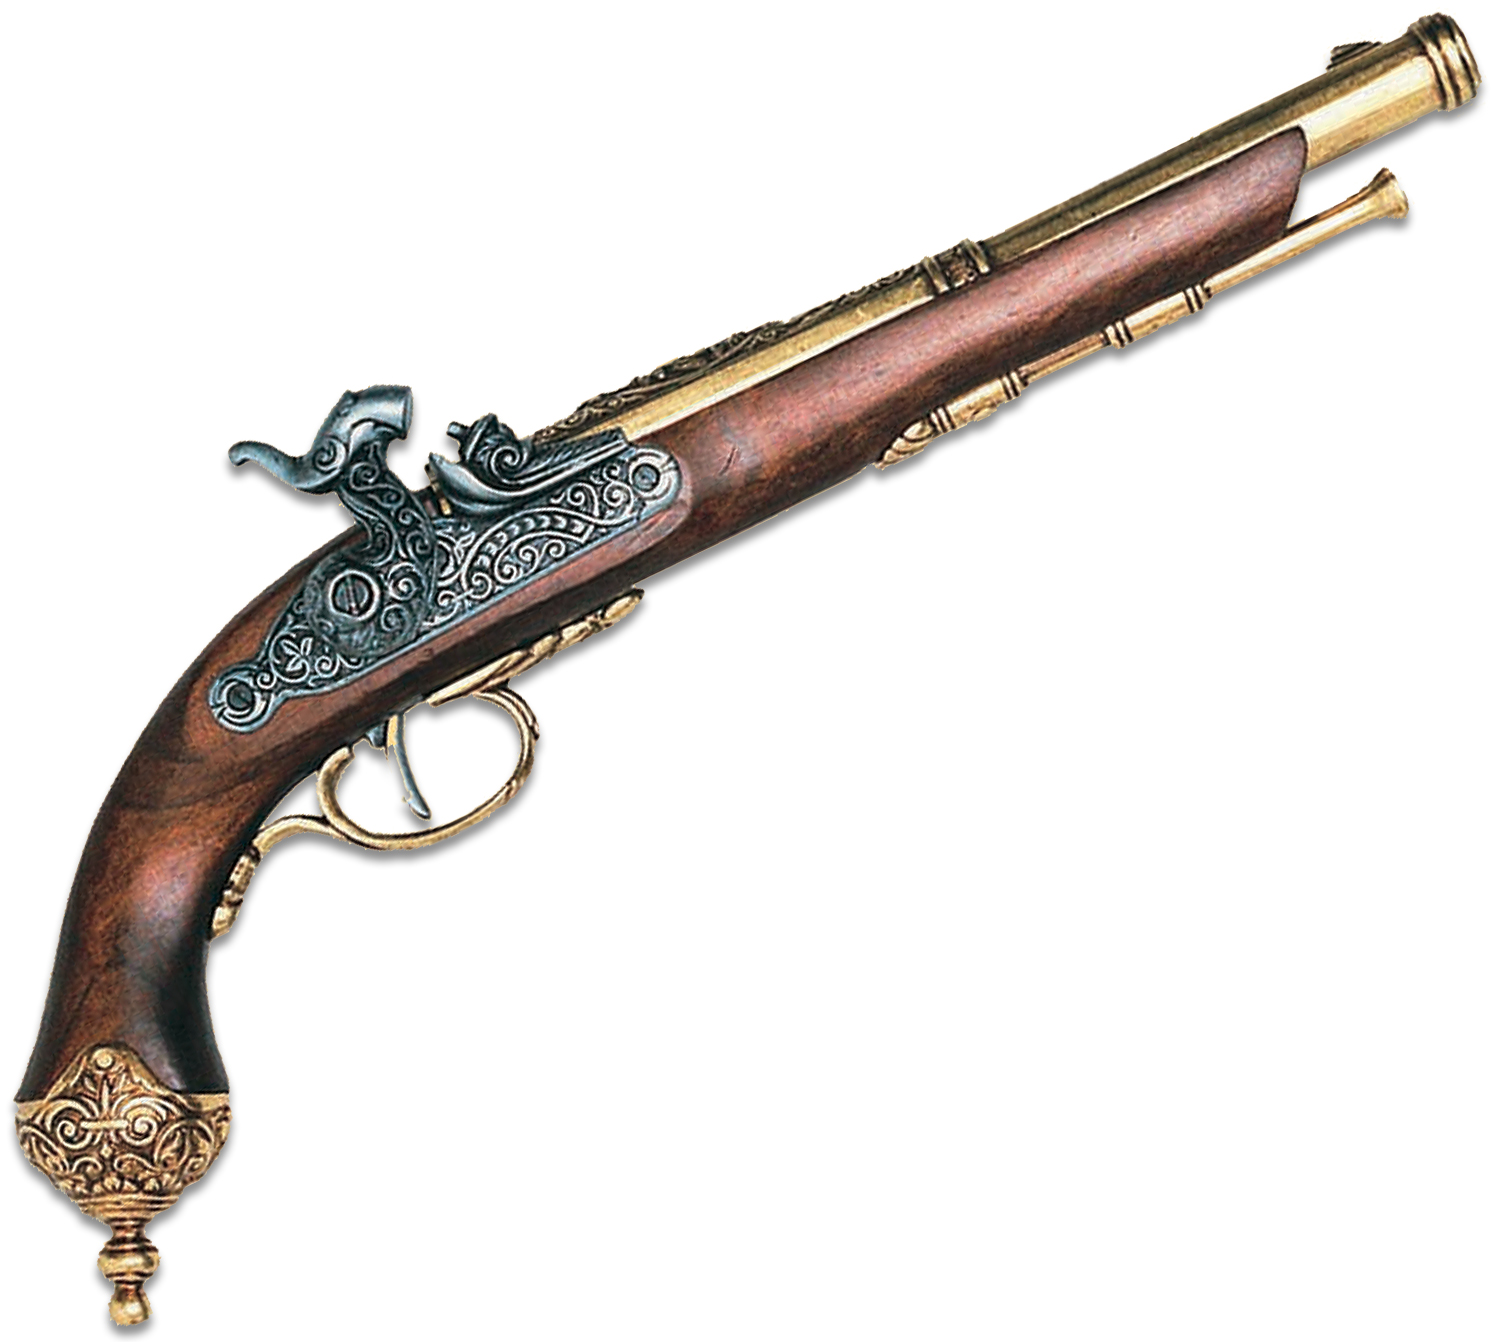 Denix Reproduction 1825 Italian Percussion Dueling Pistol, Brass